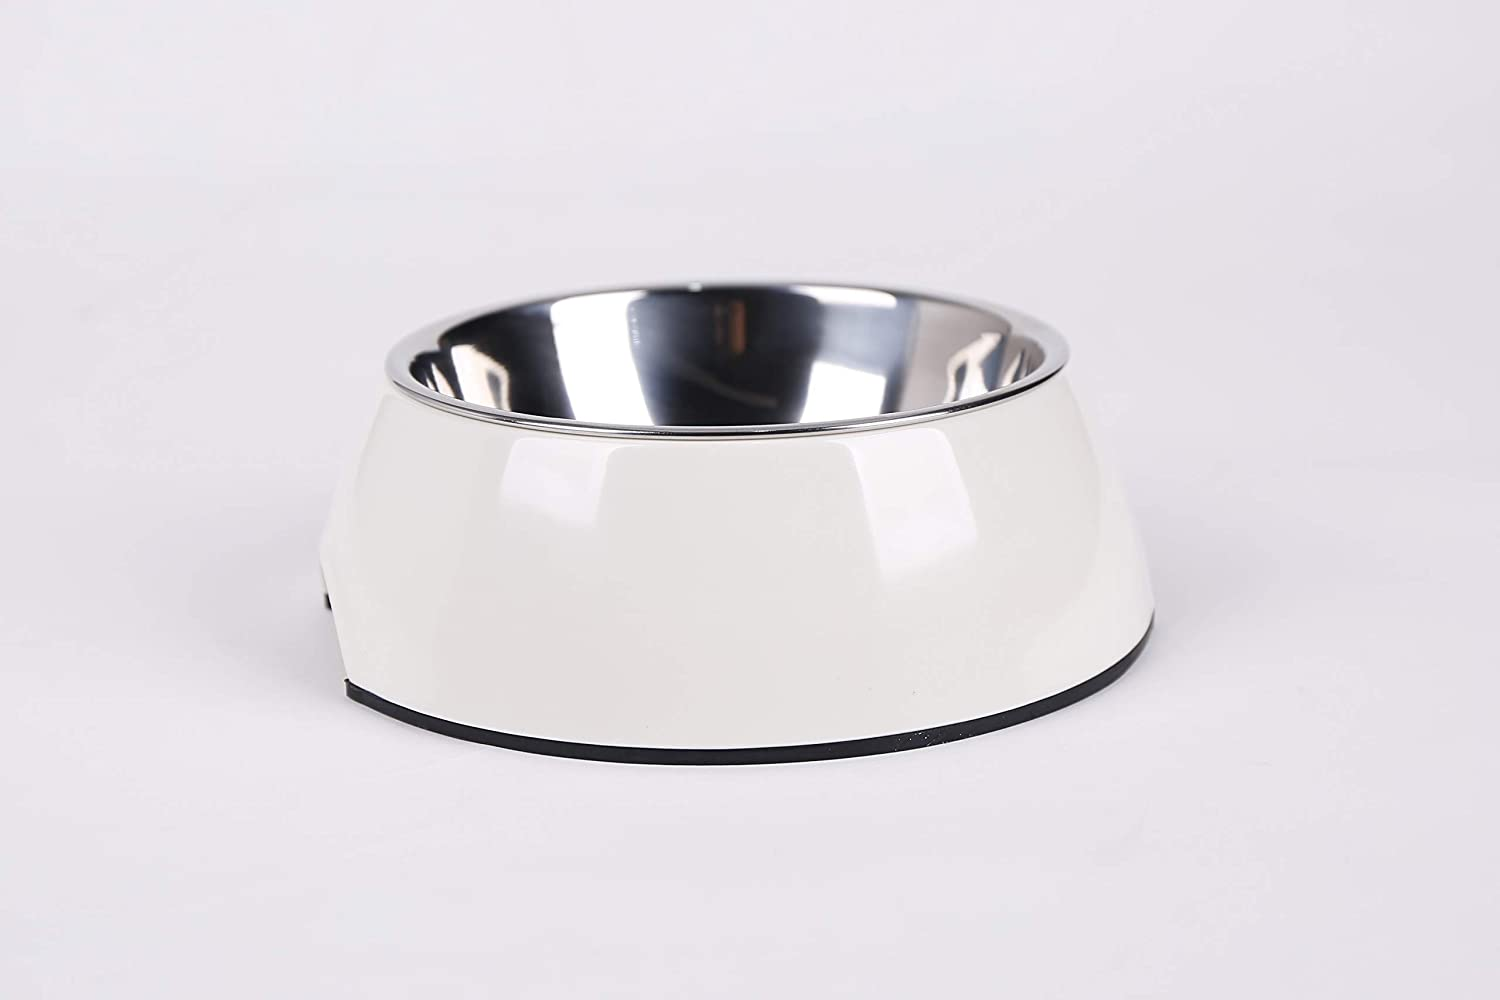 Dog Cat Pet Food Bowl Stainless Steel 2 in 1 Drinking Water Feeding Universal pet Bowl 4 Sizes and 7 Colors Available(White)